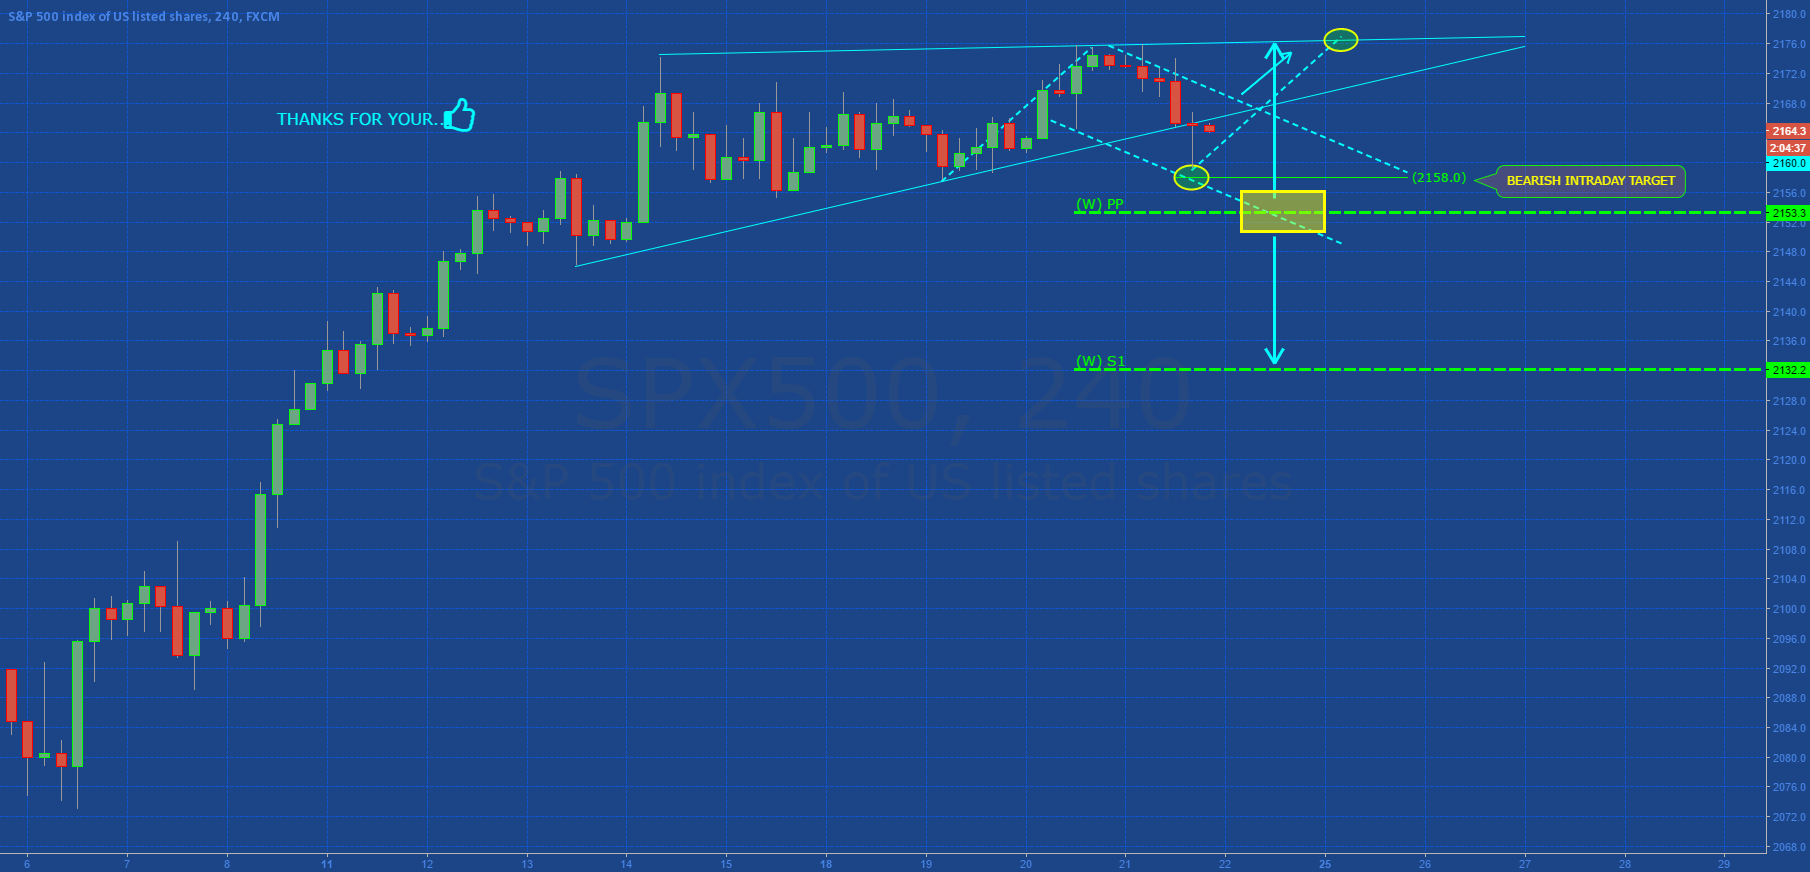 SP500: MONITOR INTRADAY